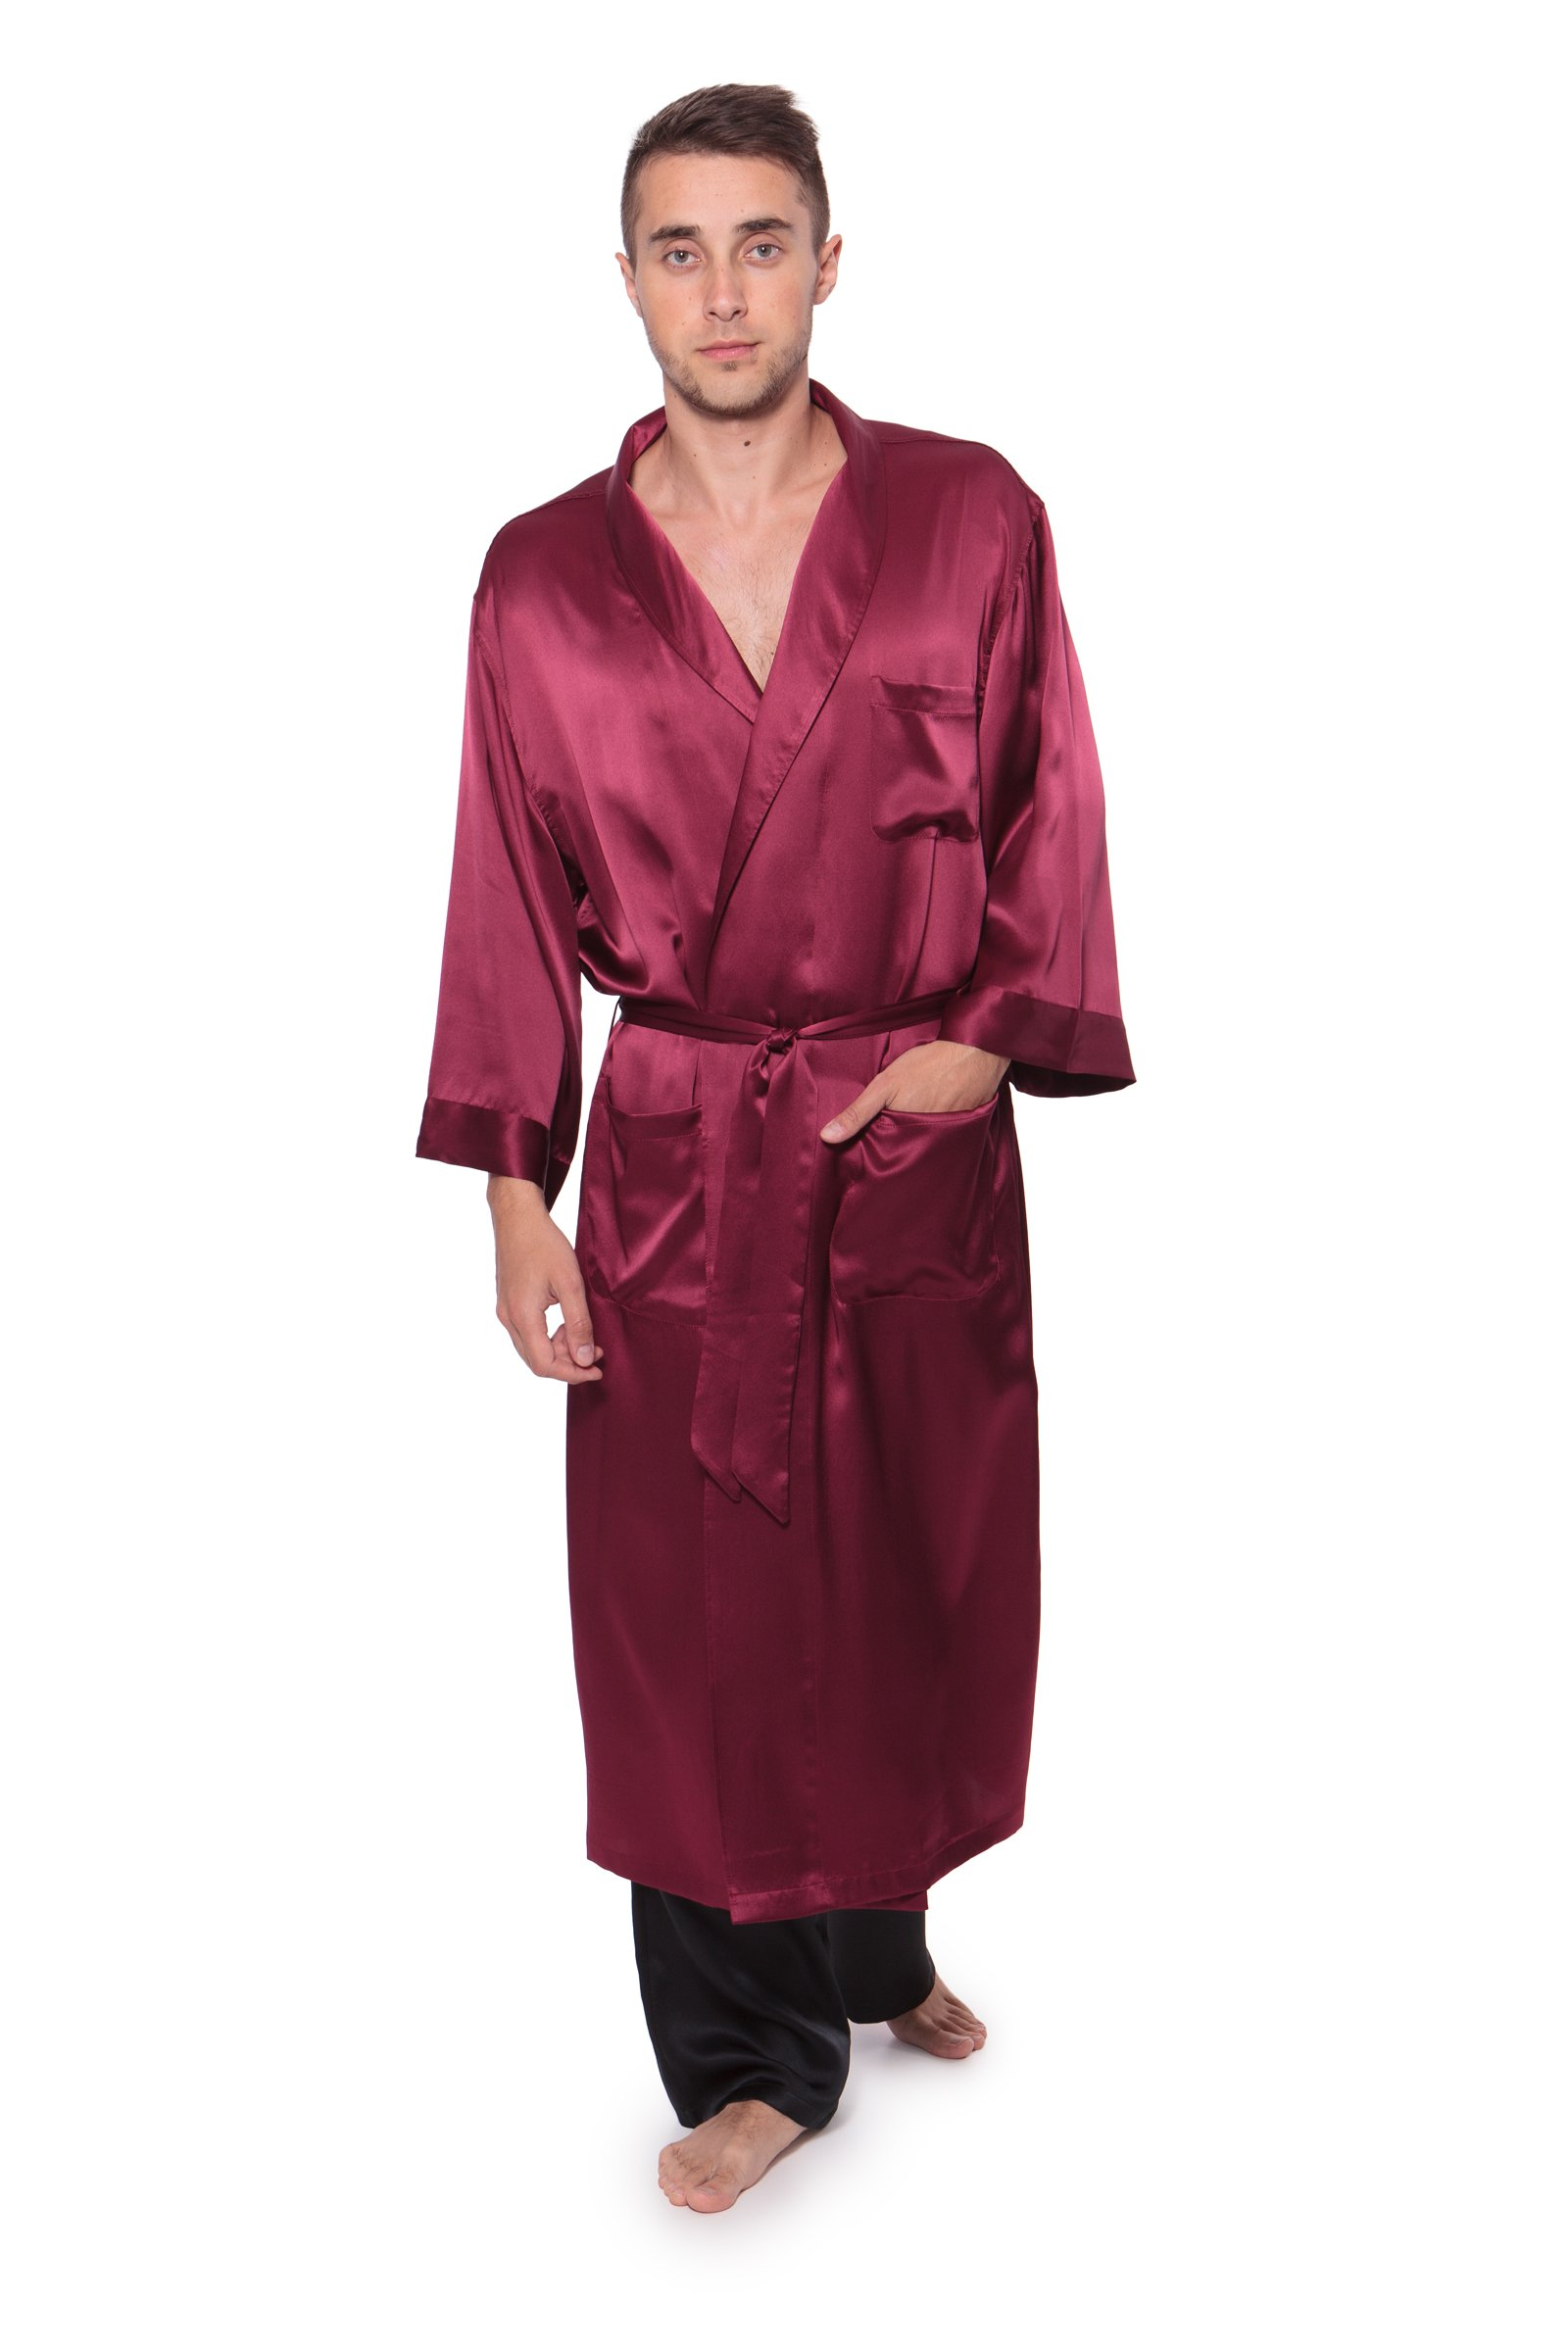 Men's 100% Silk Robe - Luxury Bathrobe for Him by Texeresilk (Turin, Burgundy, Large/X-Large) Unique Birthday Anniversary Gifts for Him MS0103-BRG-LXL